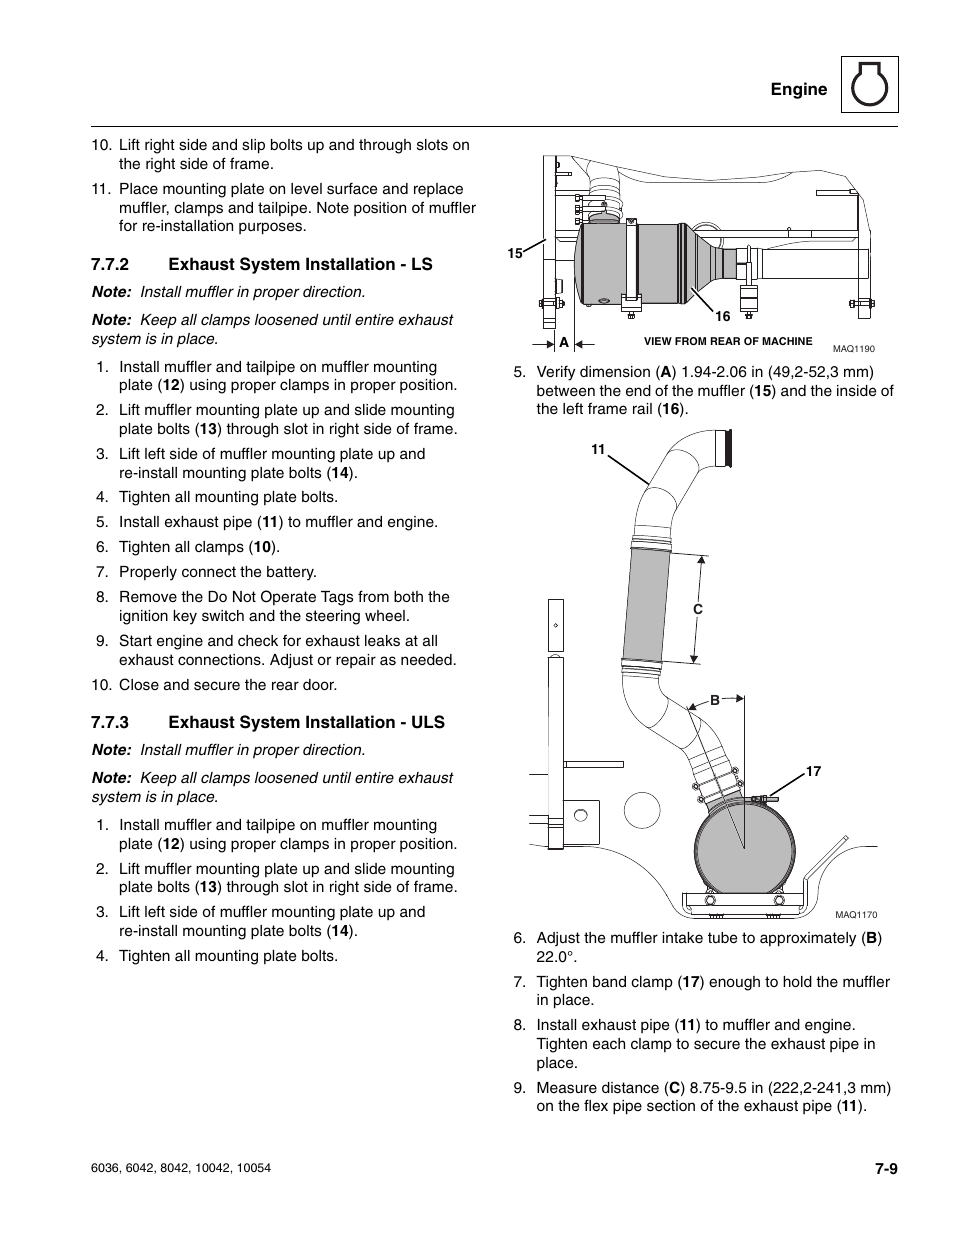 2 exhaust system installation ls 3 exhaust system installation 2 exhaust system installation ls 3 exhaust system installation uls exhaust system publicscrutiny Choice Image